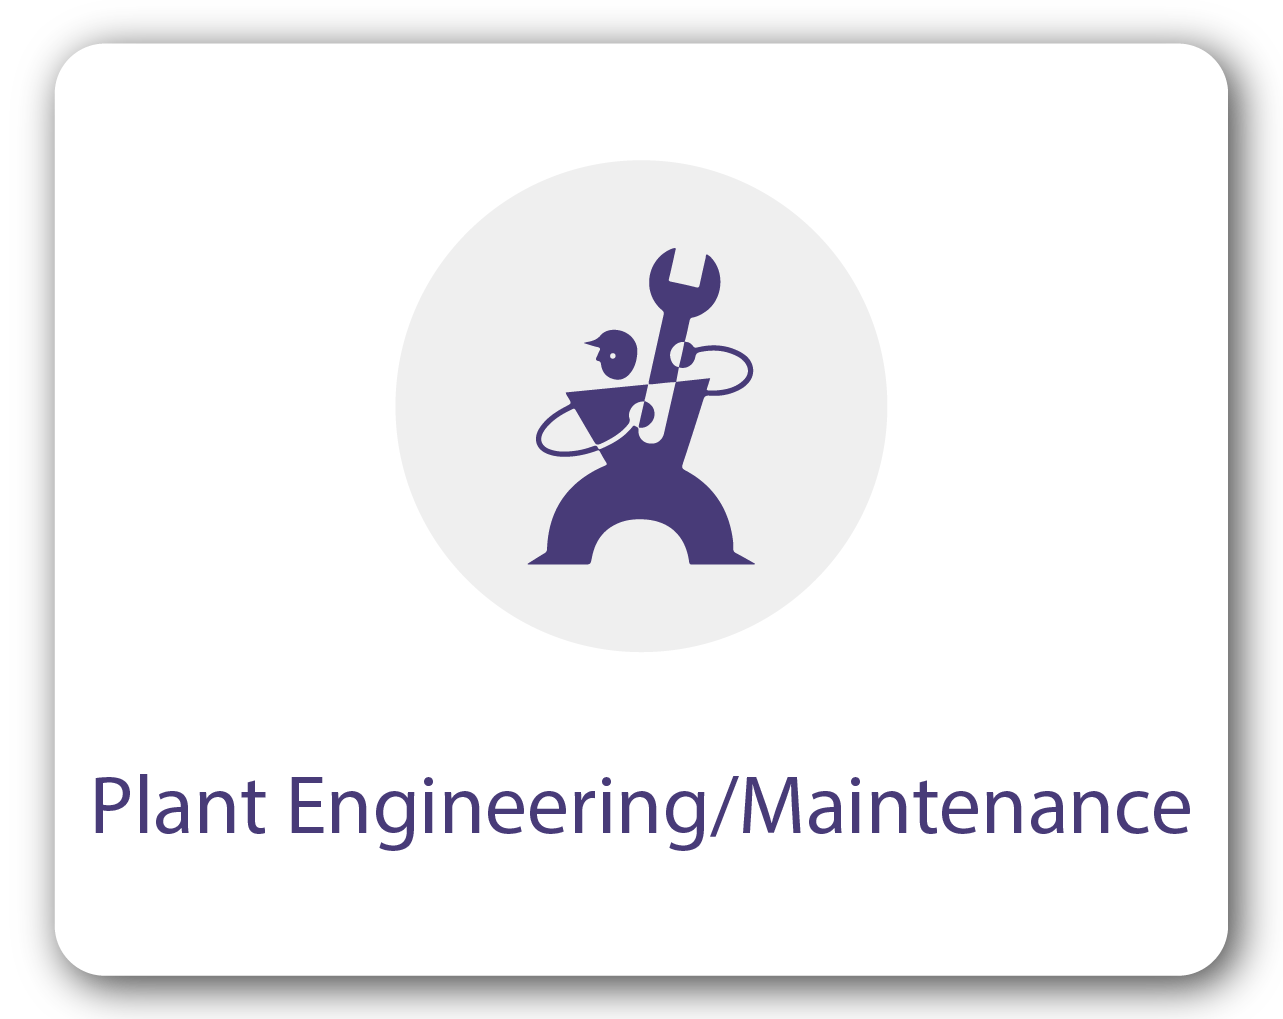 Plant Engineering/Maintenance